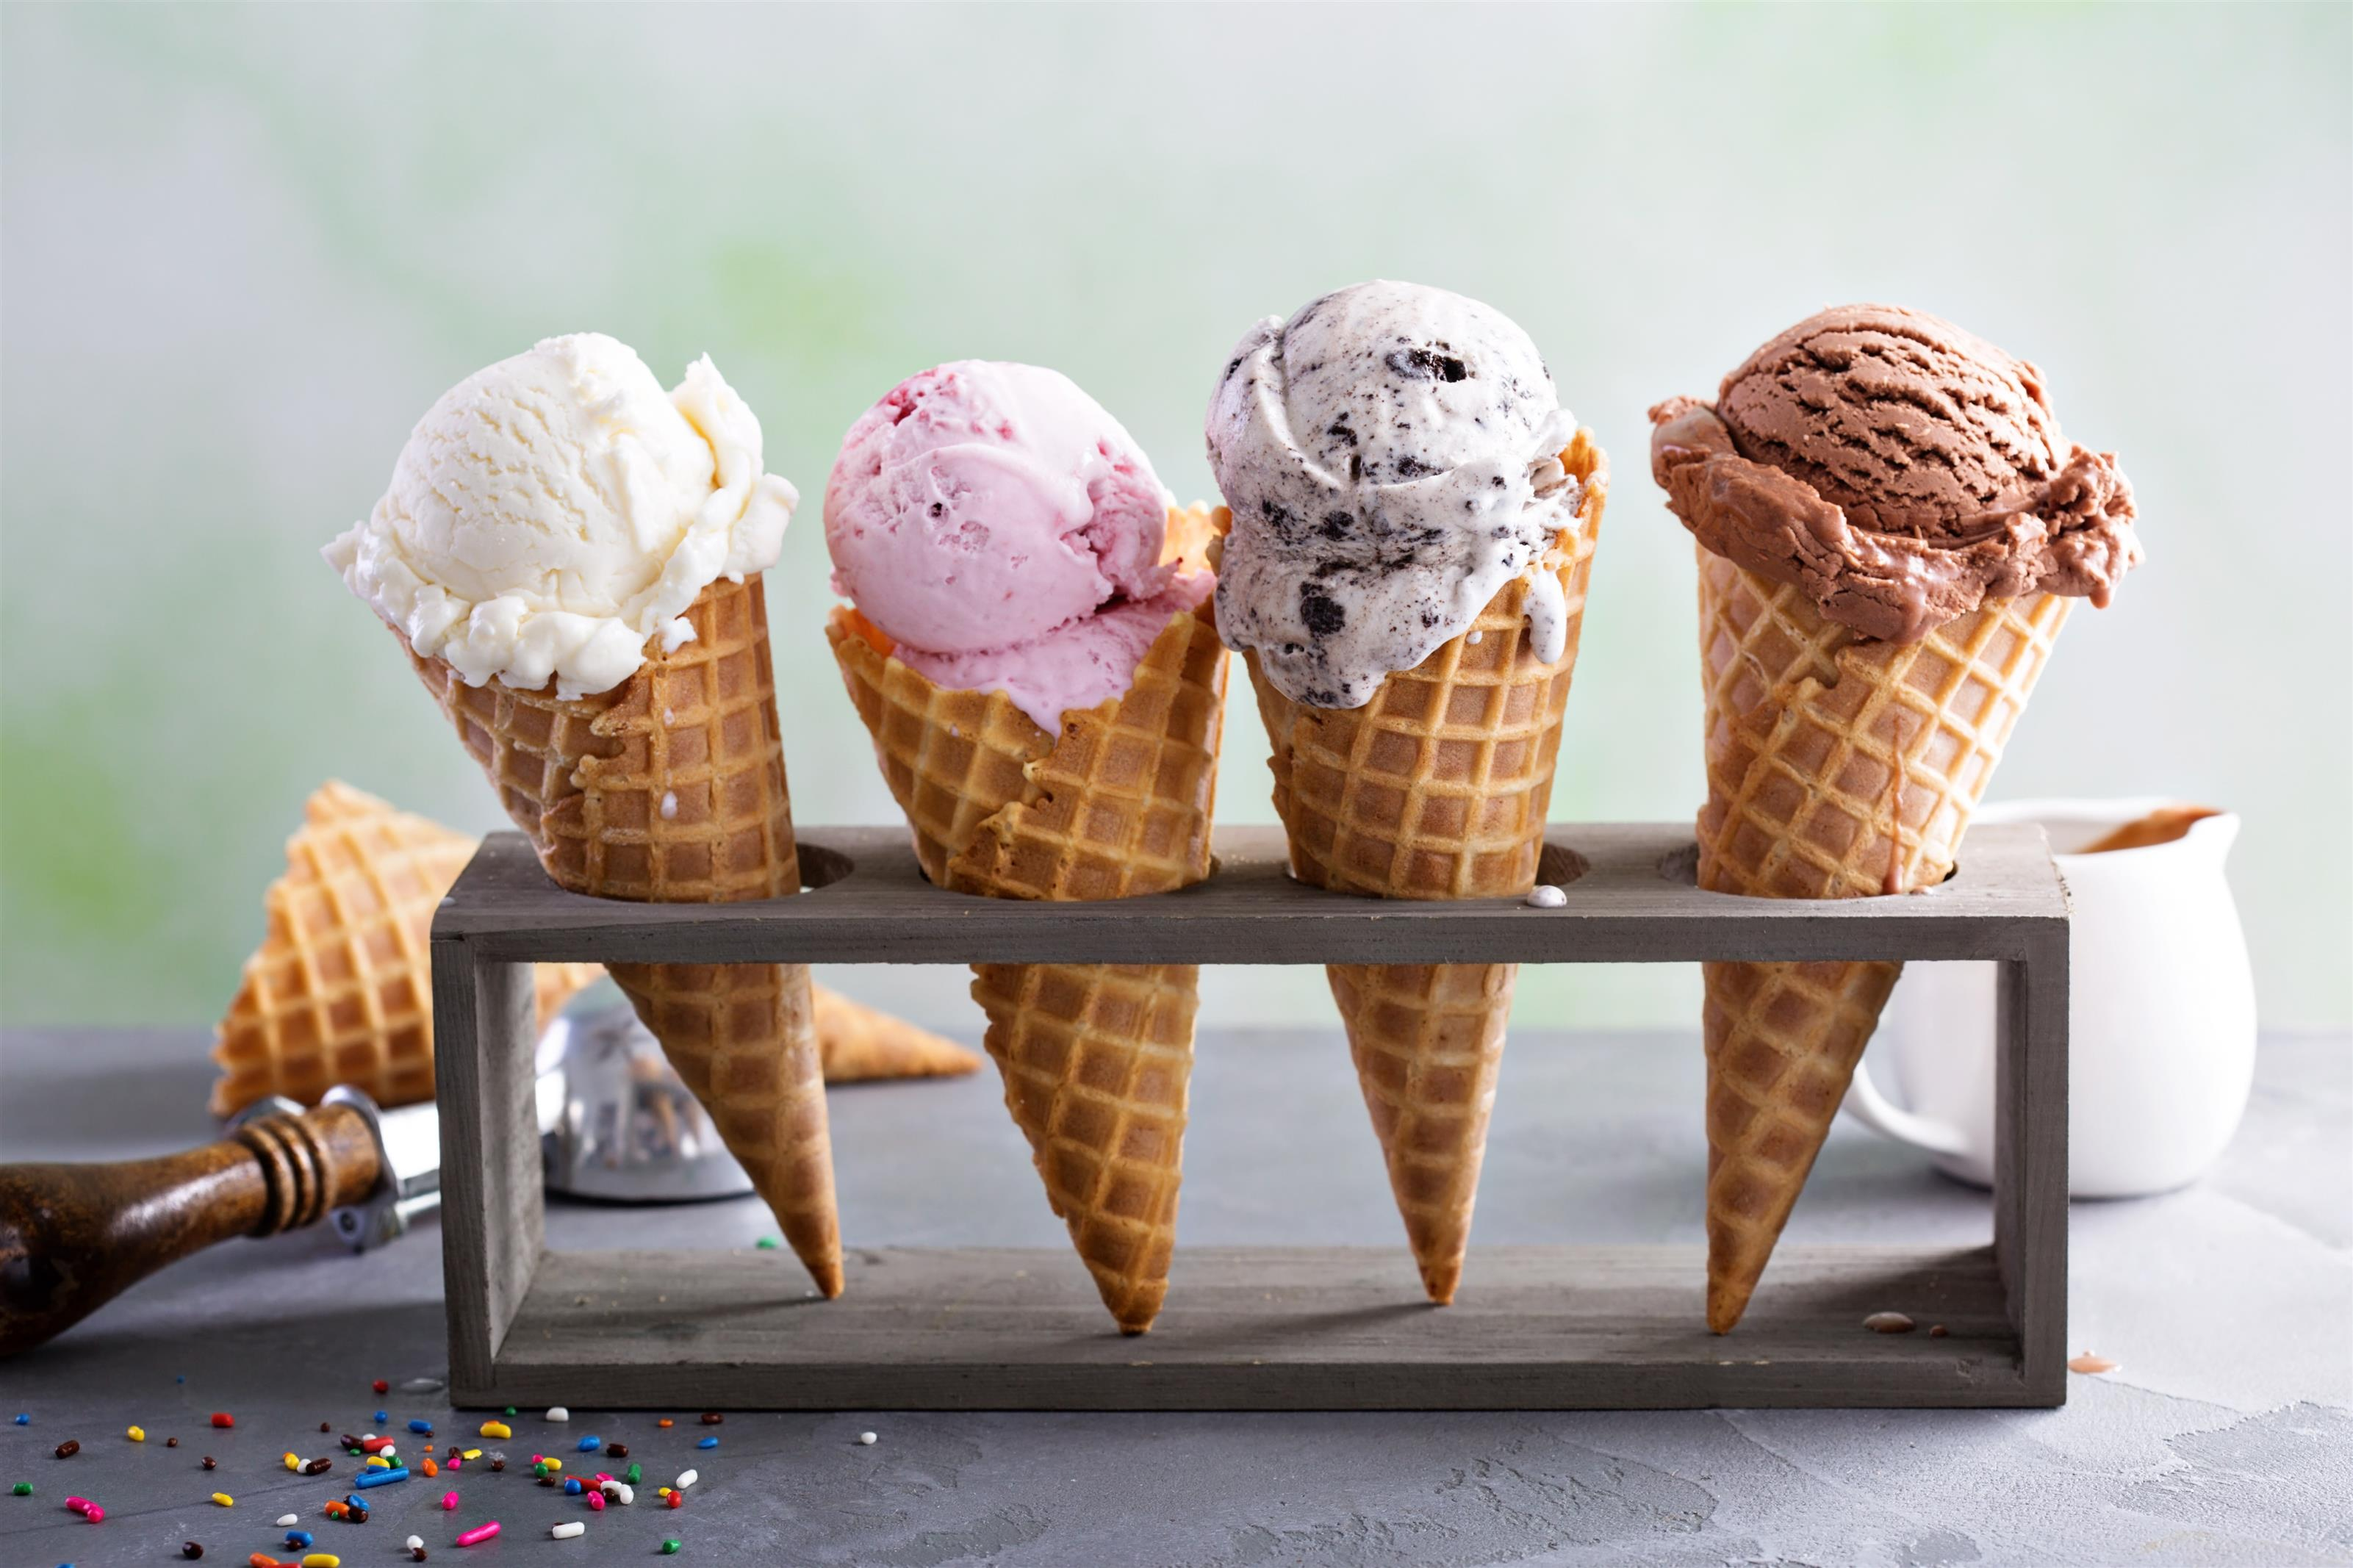 Assorted flavors of ice cream on cones placed in a cone holder